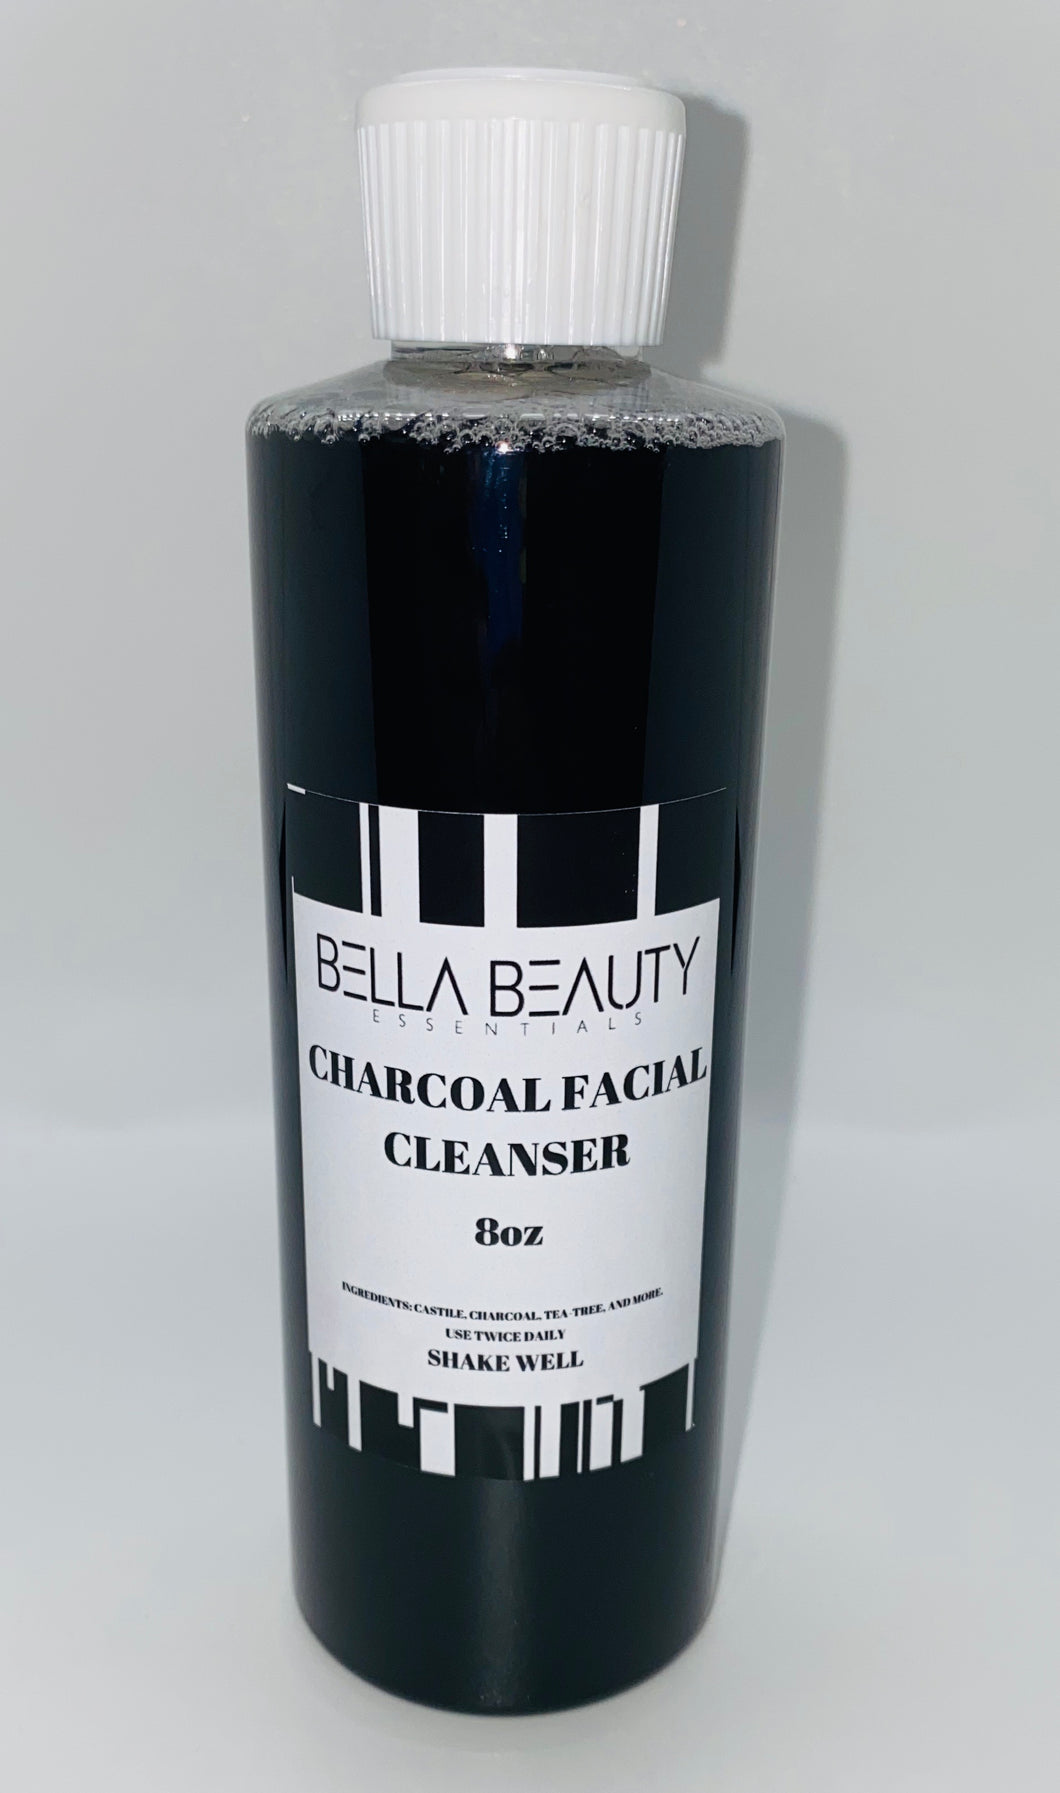 Charcoal Facial Cleanser